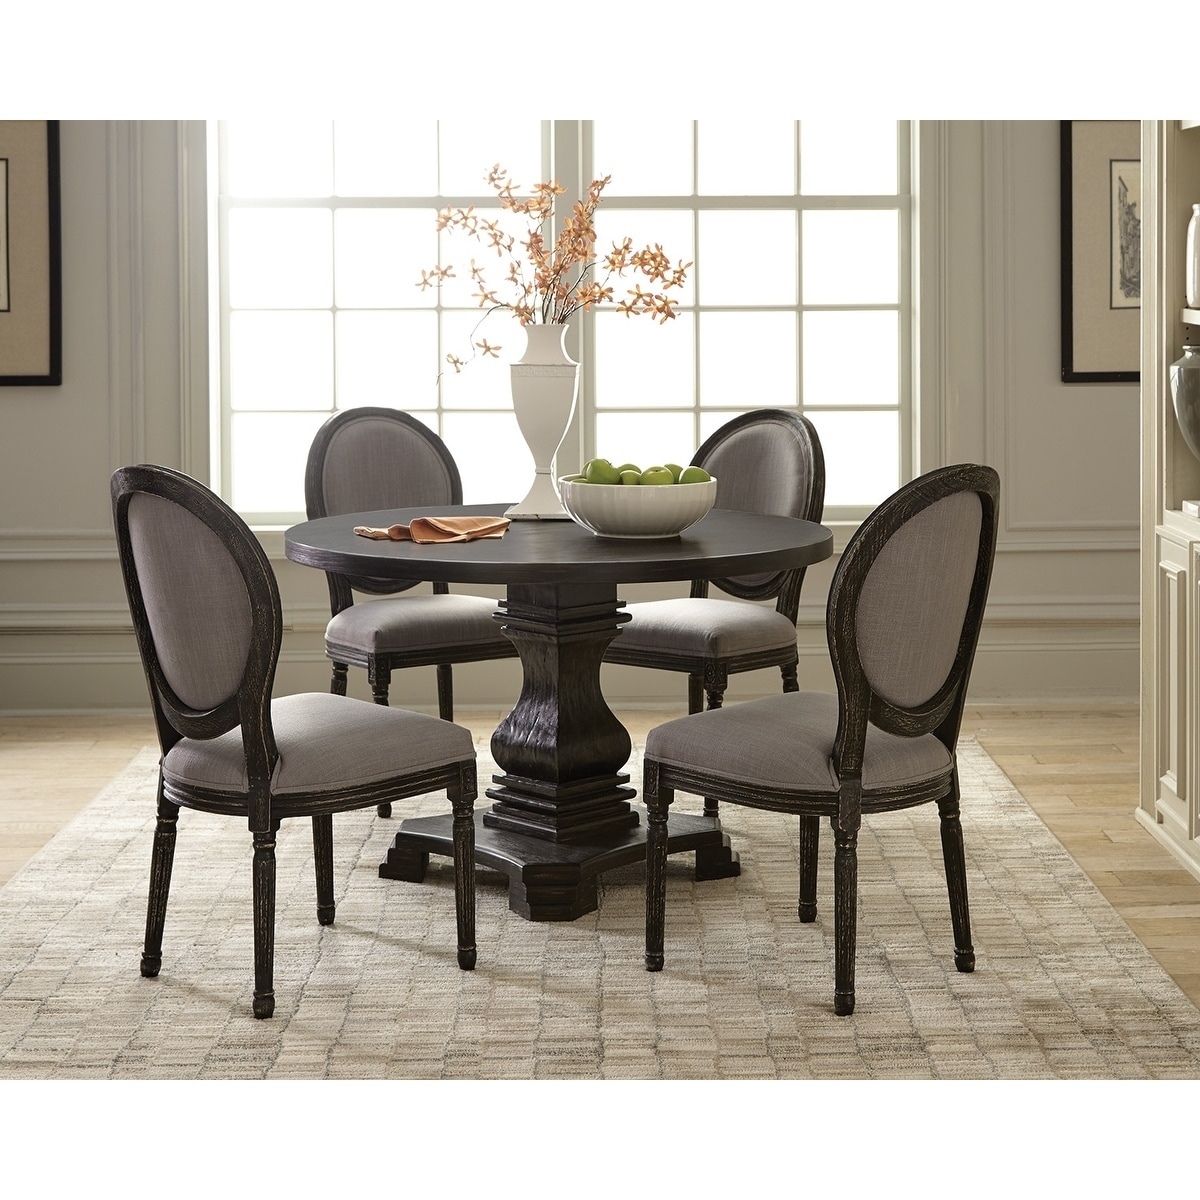 Terrific Columbus European Traditional Round Black Dining Table Antique Black Cjindustries Chair Design For Home Cjindustriesco